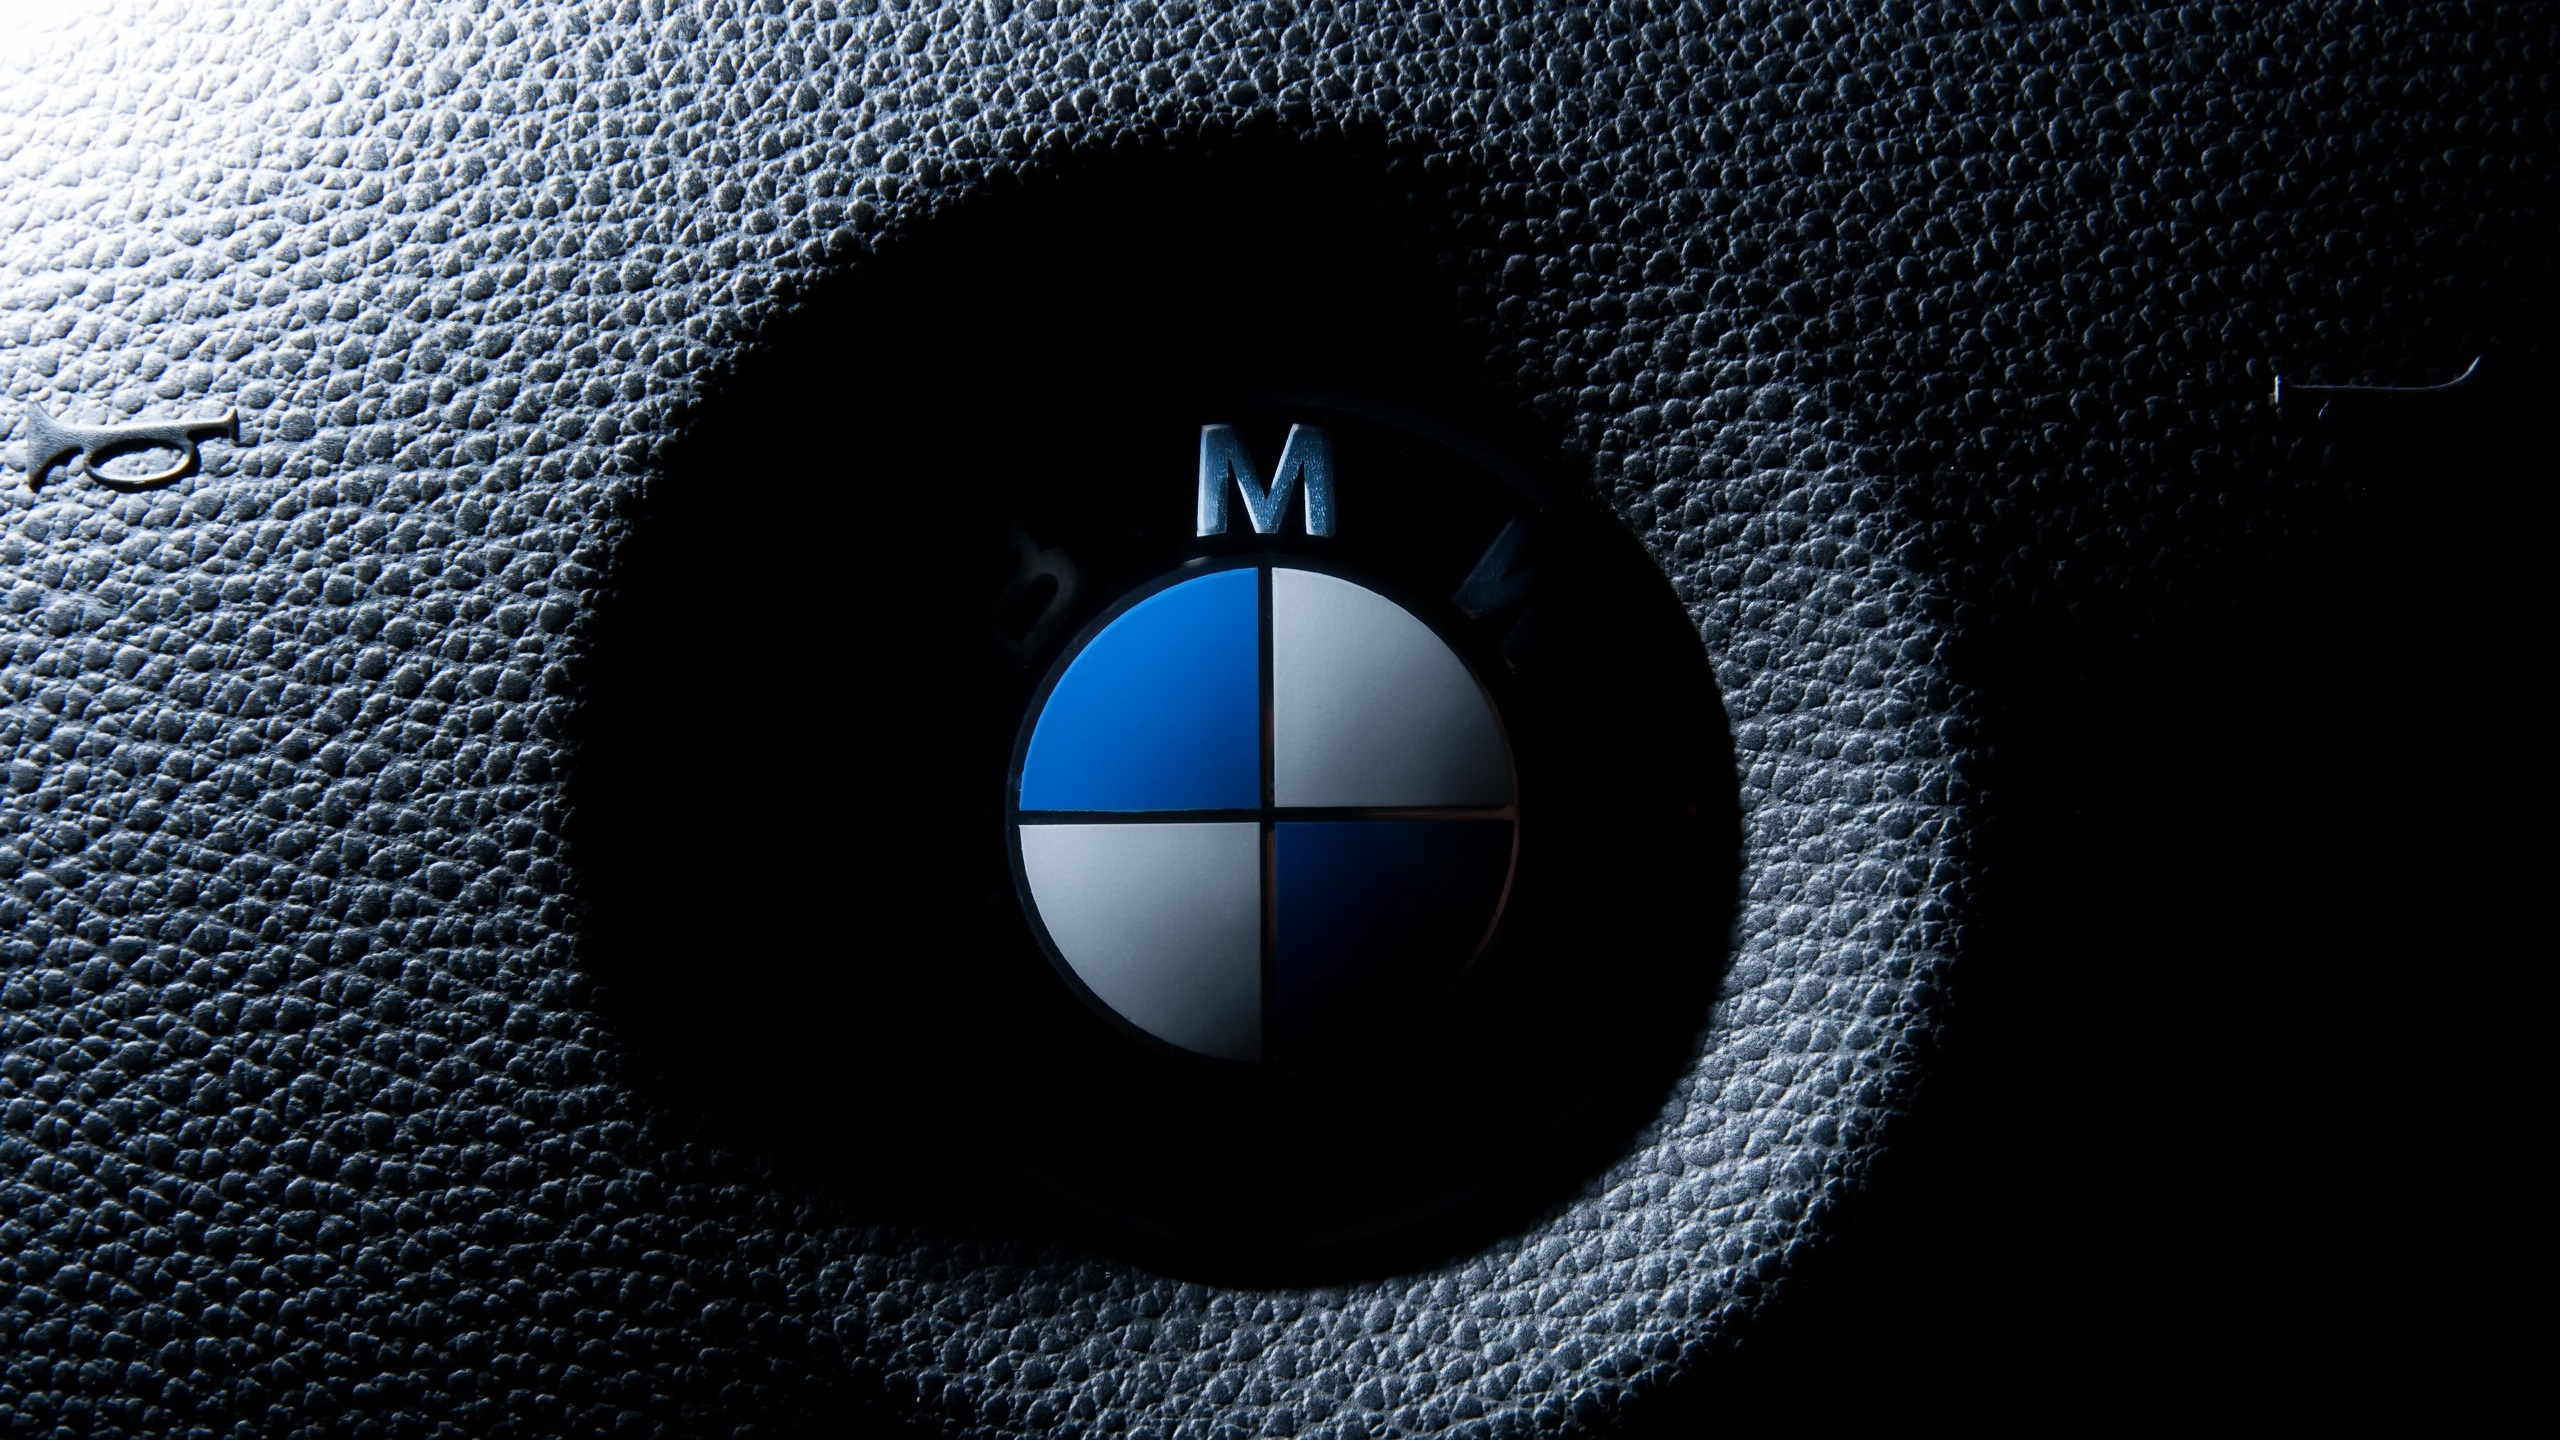 Wallpaper Bmw Logo Macro Photography 2560x1440 Qhd Picture Image